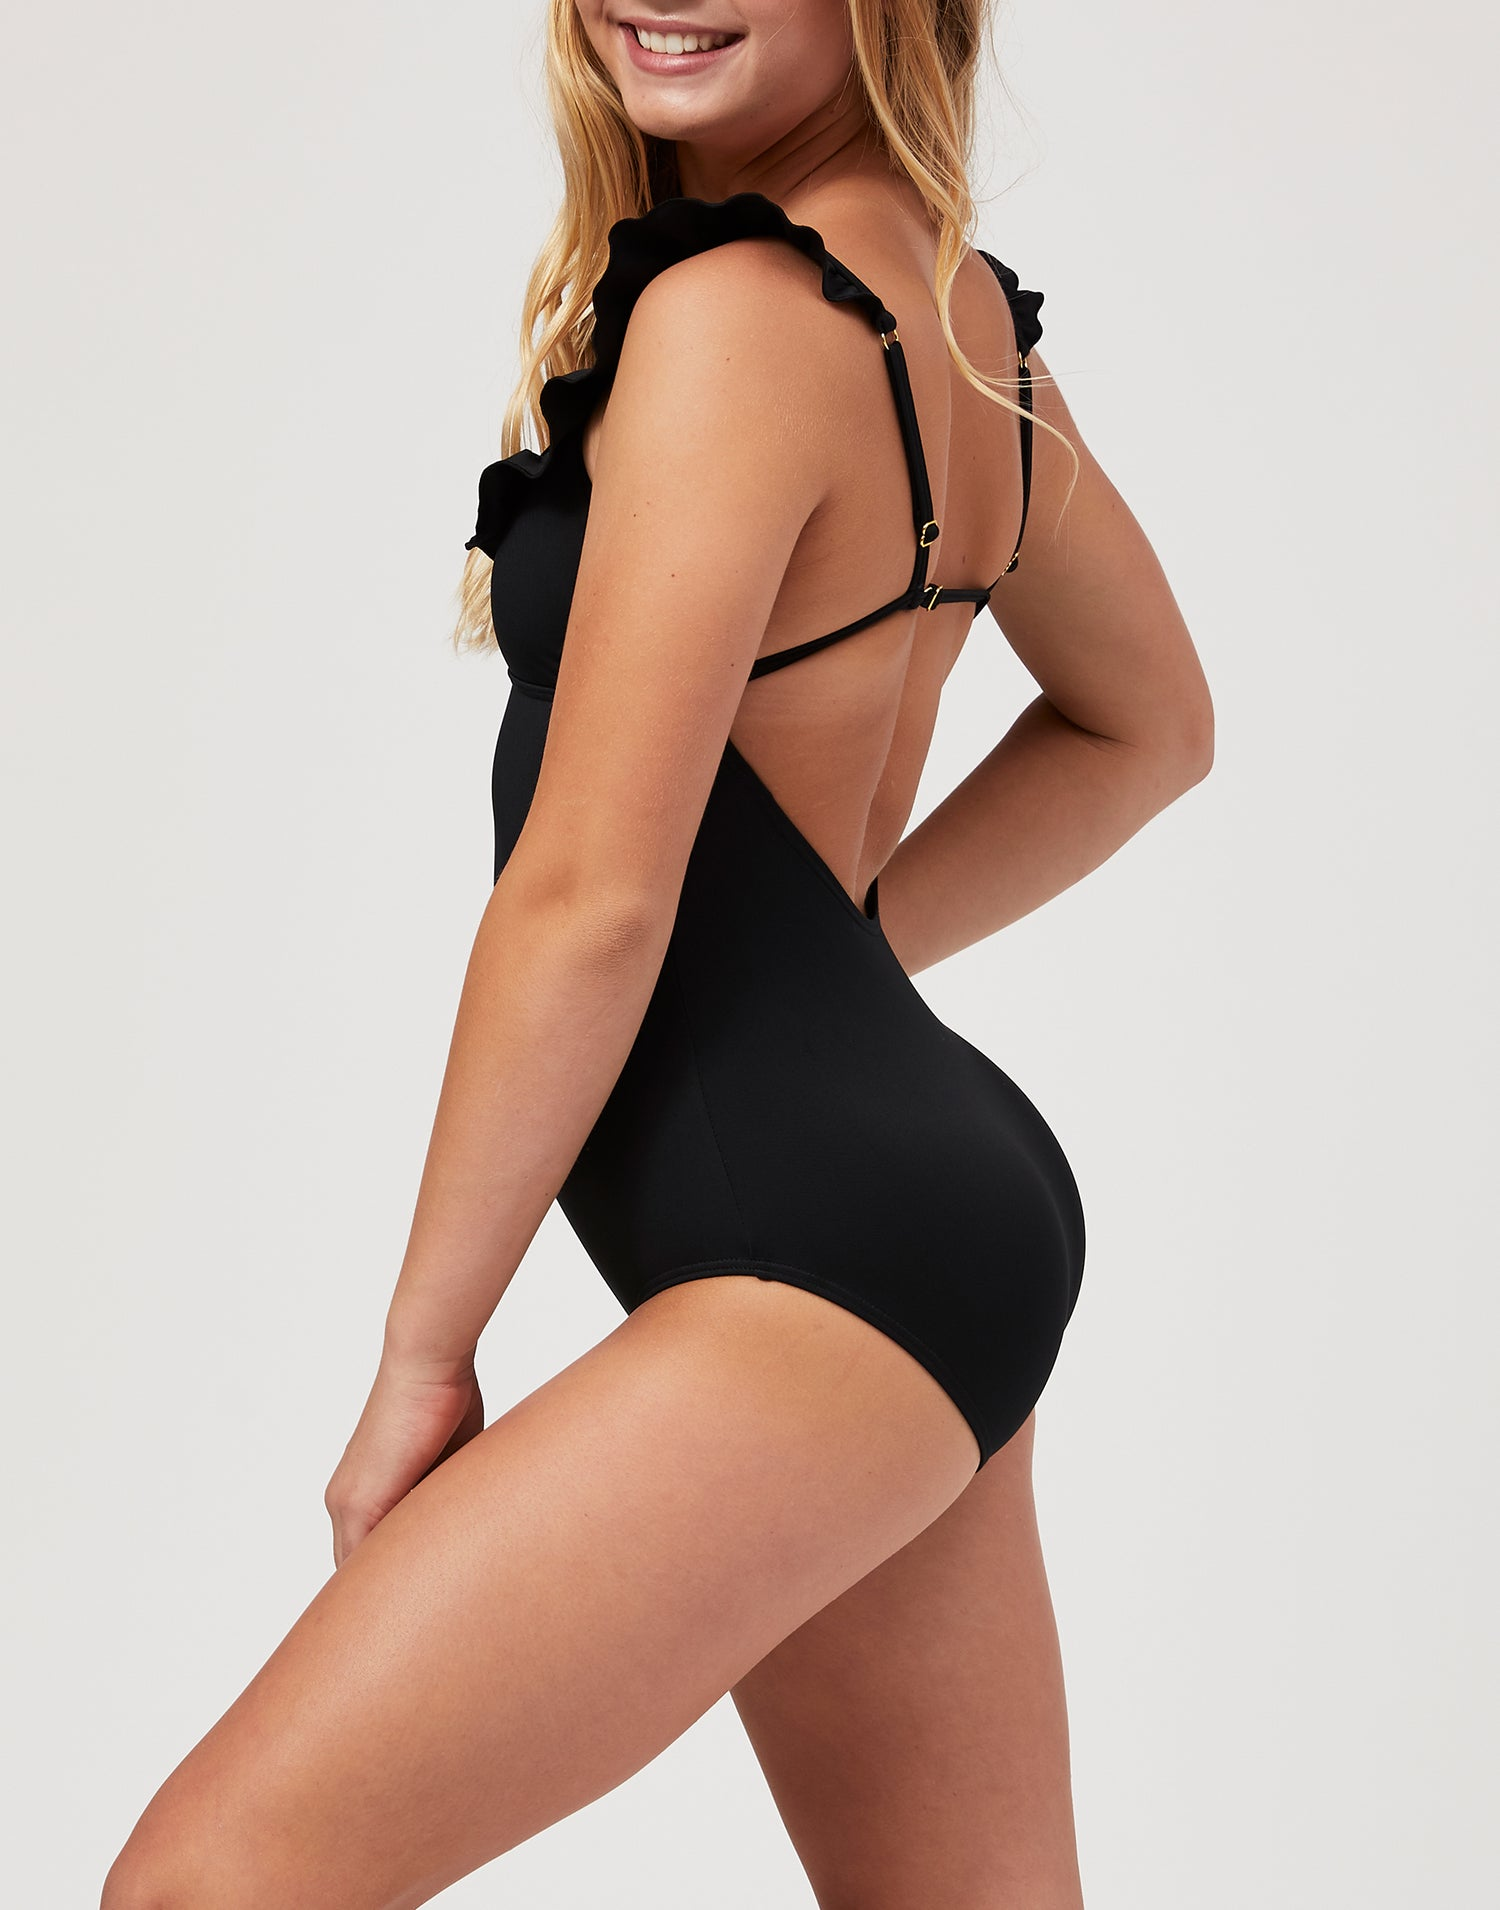 Adult Ireland Leotard in Black - side view